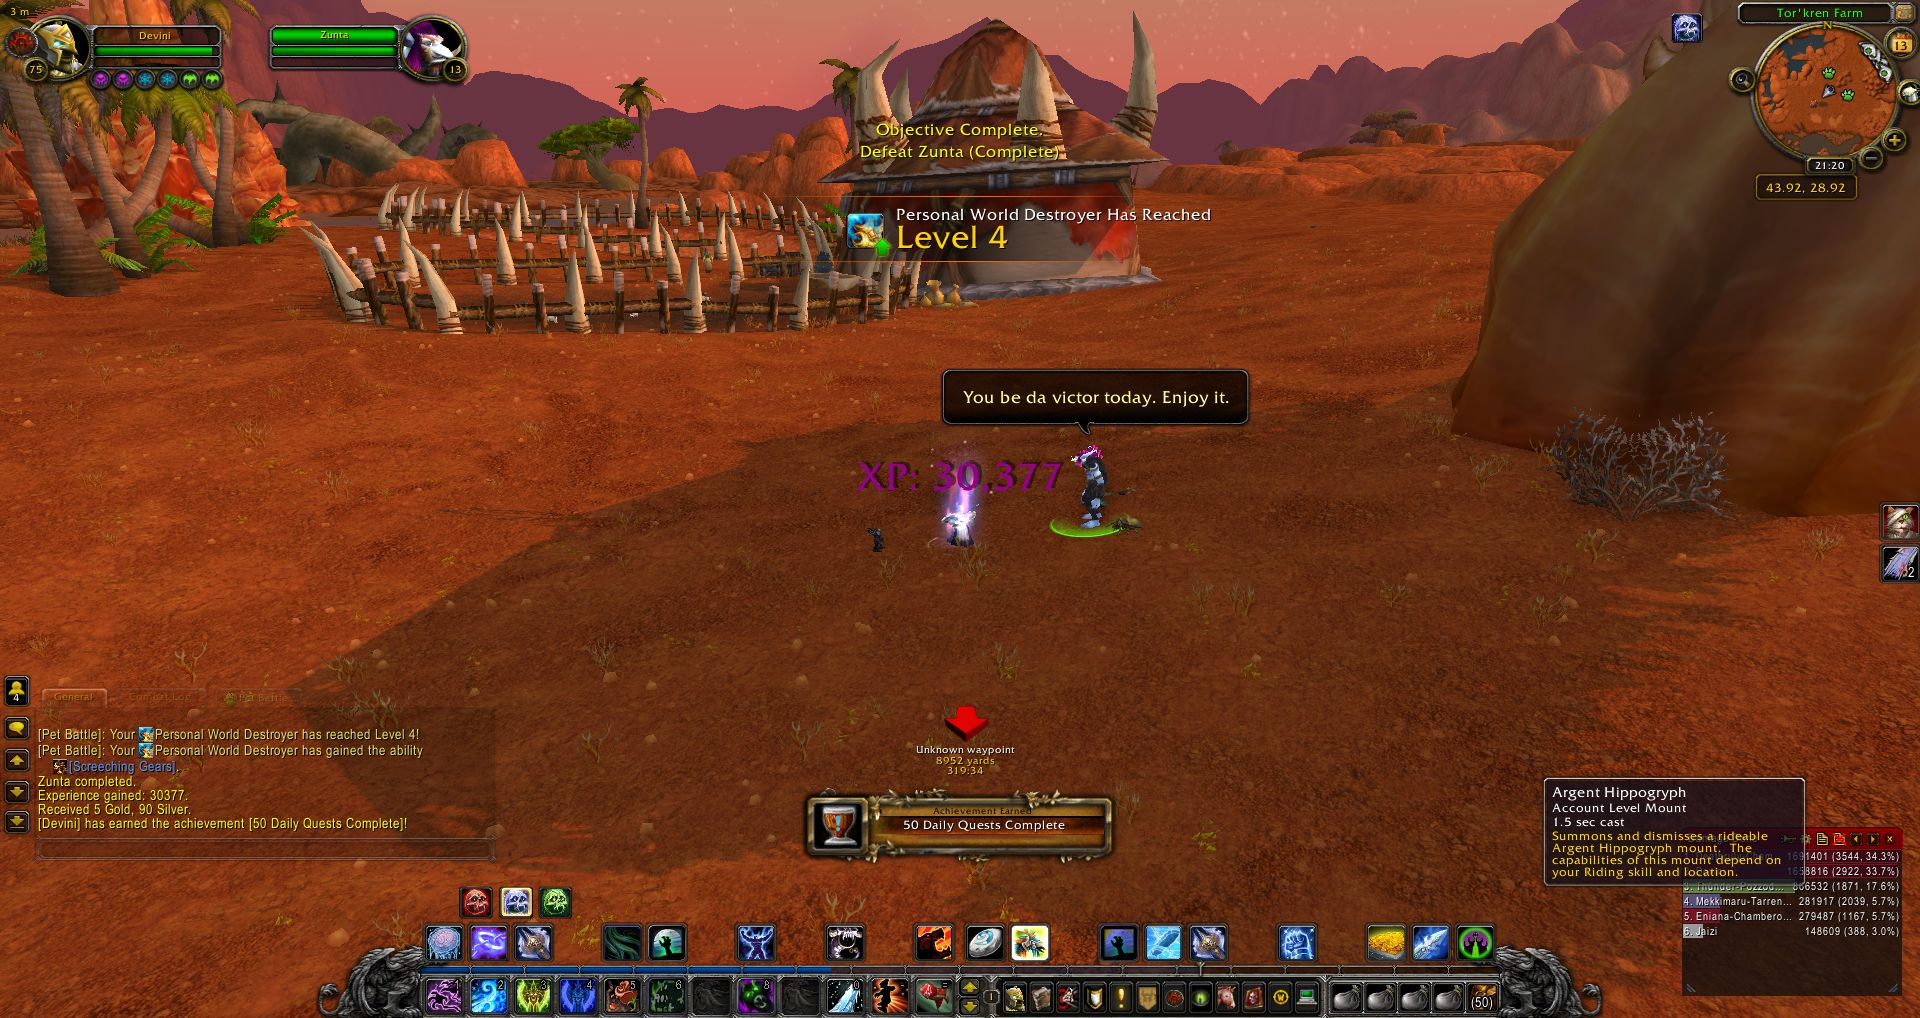 Personal World Destroyer level up wow screenshot - Gamingcfg com